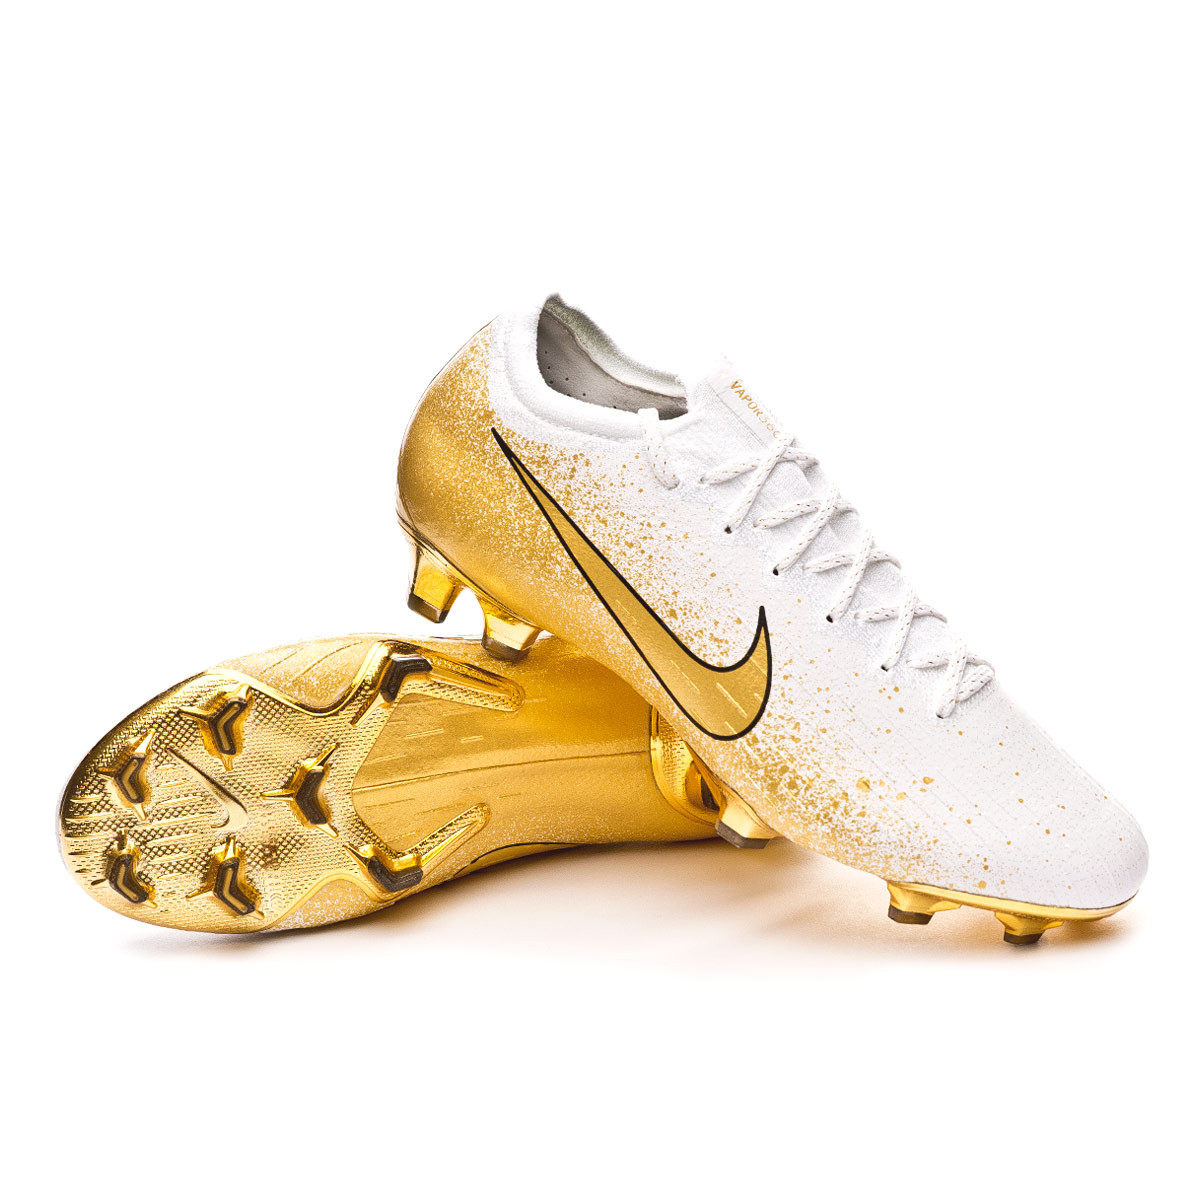 Atlas caloría soplo  Football Boots Nike Vapor XII Elite FG Euphoria Mode Champagne gold -  Football store Fútbol Emotion